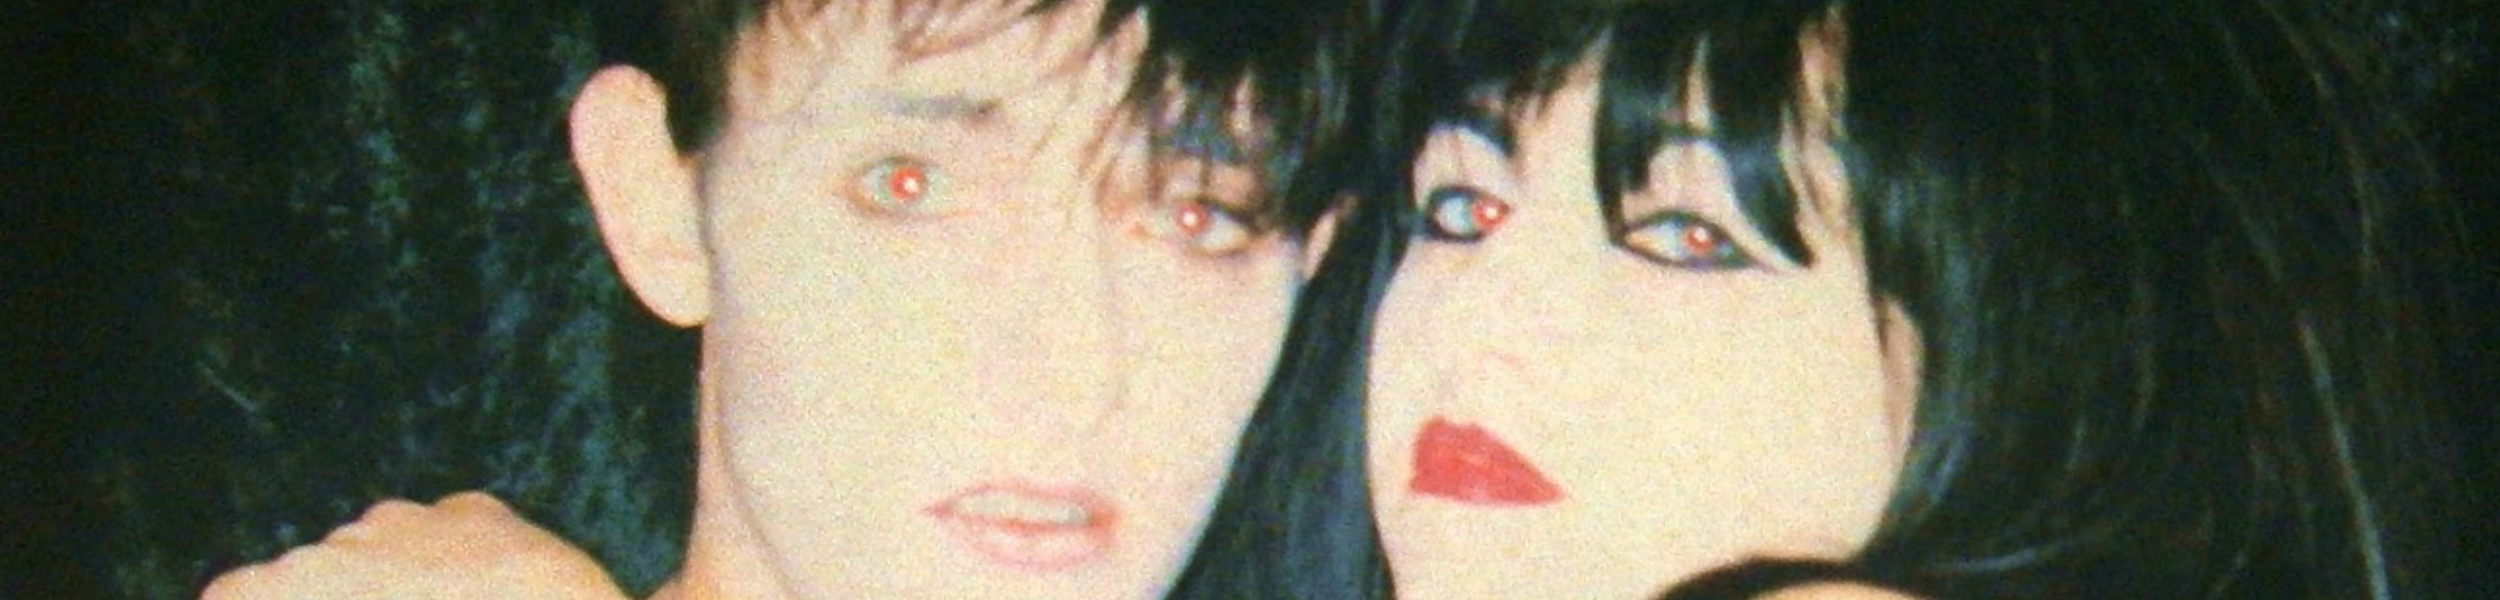 Rowland S Howard / Lydia Lunch - title